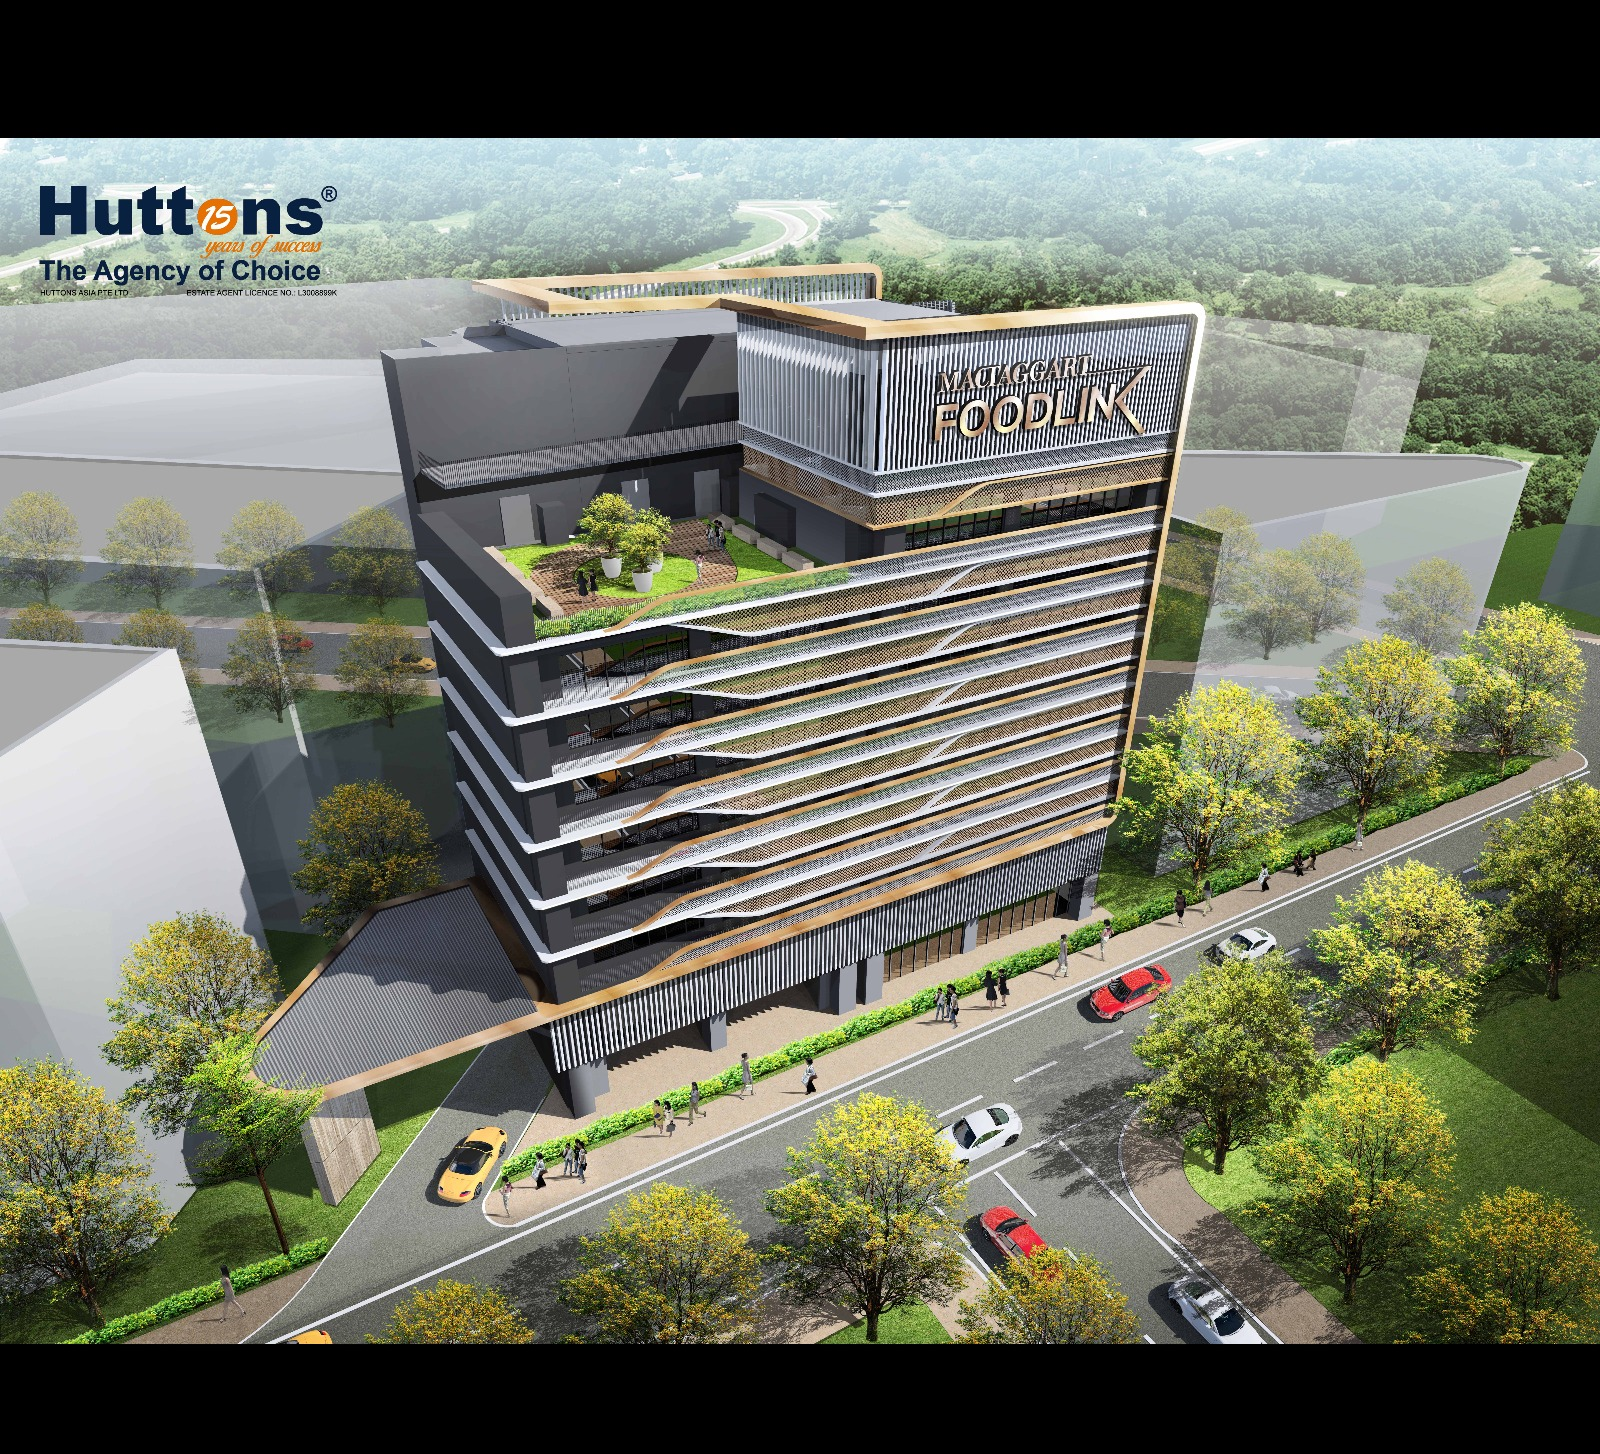 http://www.idealproperty.com.sg/mactaggart-foodlink/